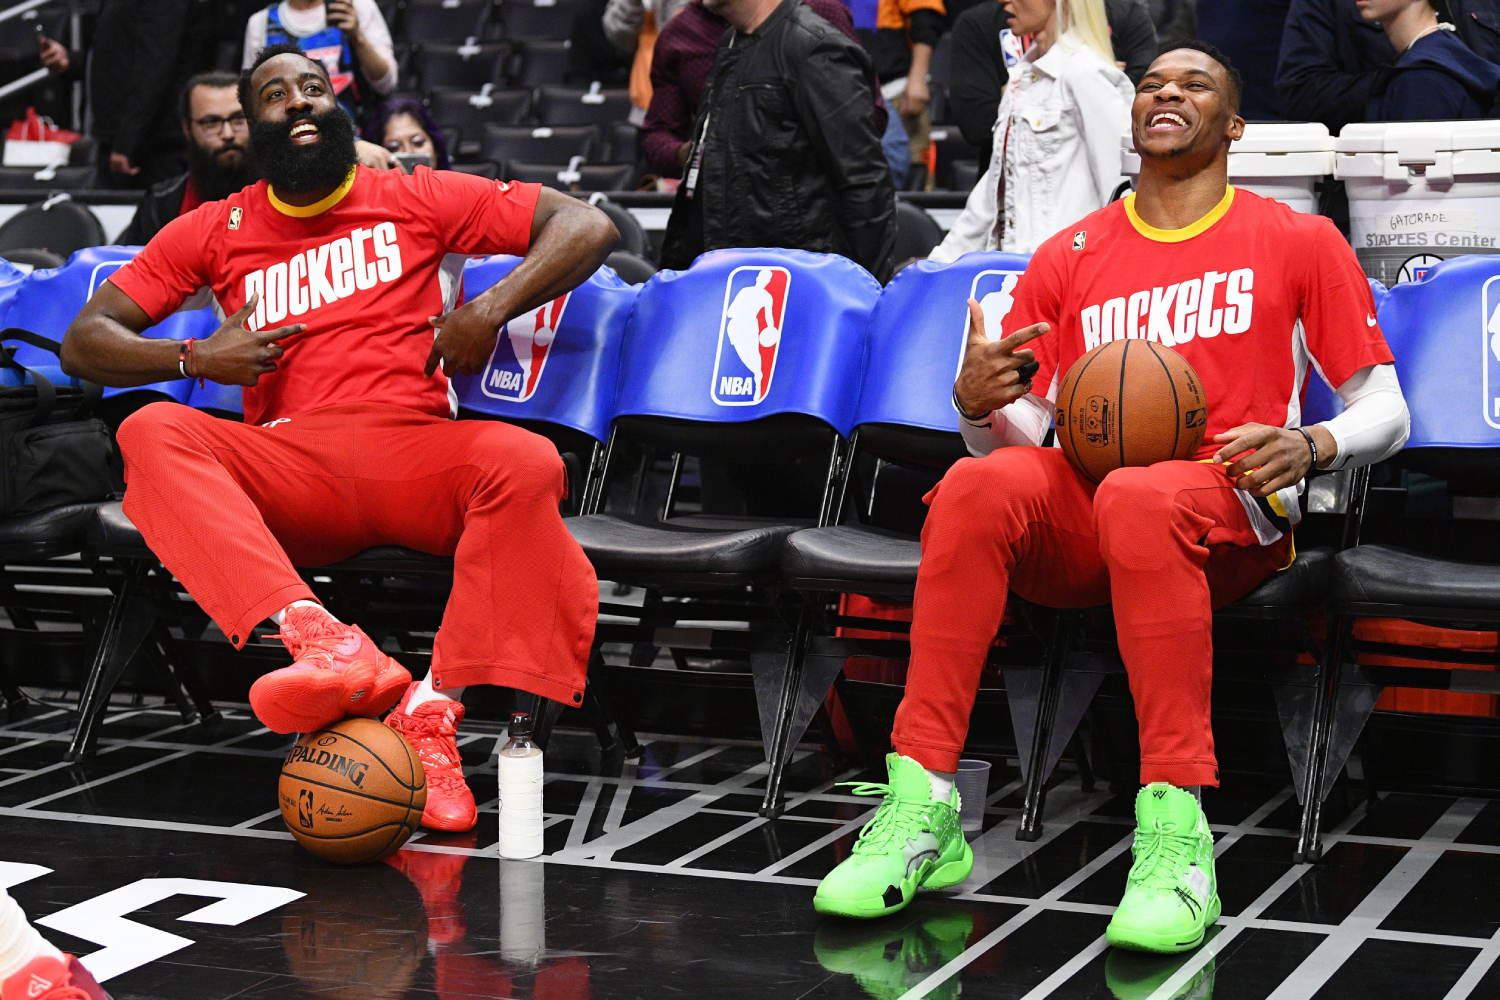 Russell Westbrook and James Harden are one of the top duos in the NBA. So, which Houston Rockets star has a higher net worth?